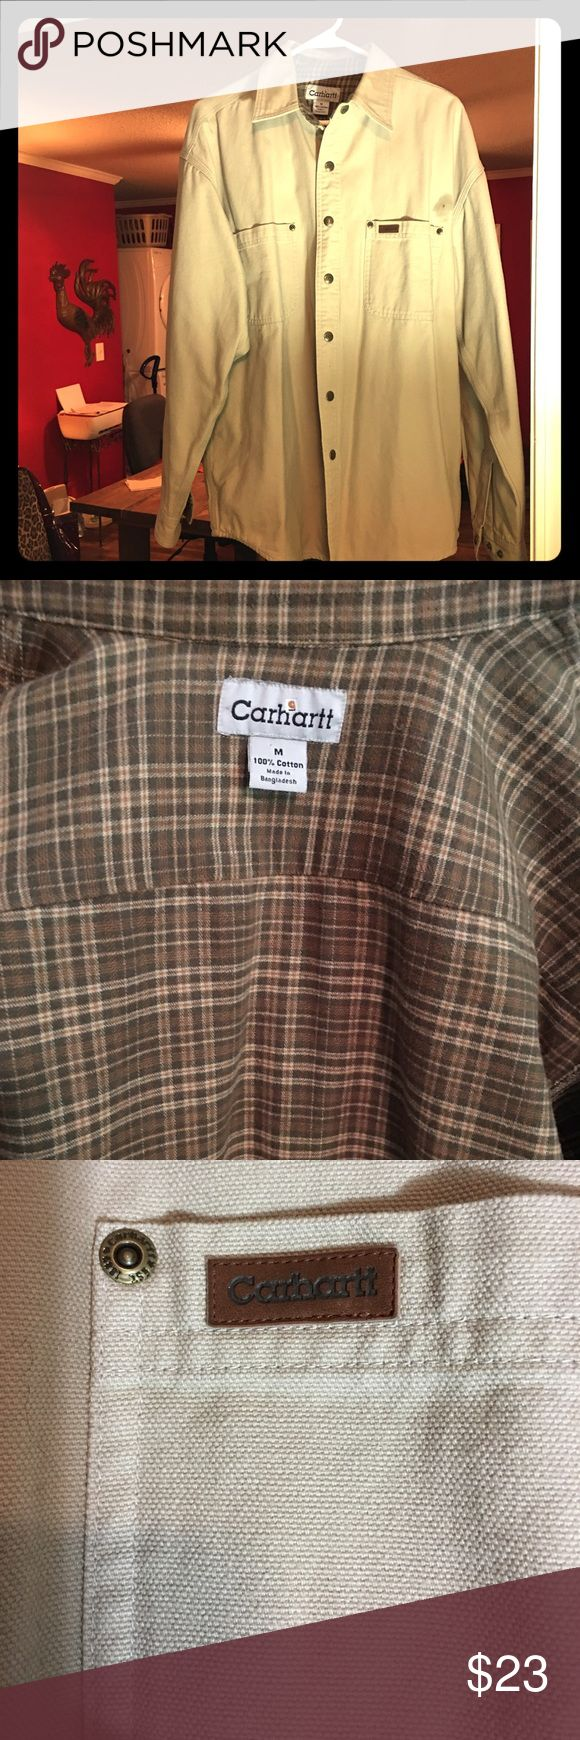 Men's Carhart Heavyweight shirt/jacket SZ Medium Plaid flannel type interior and beige exterior with snap buttons. Very warm and like new. It just doesn't often get cold enough in Alabama to wear. Men's Medium   A bit oversized for a Medium.  Carhartt Shirts Casual Button Down Shirts